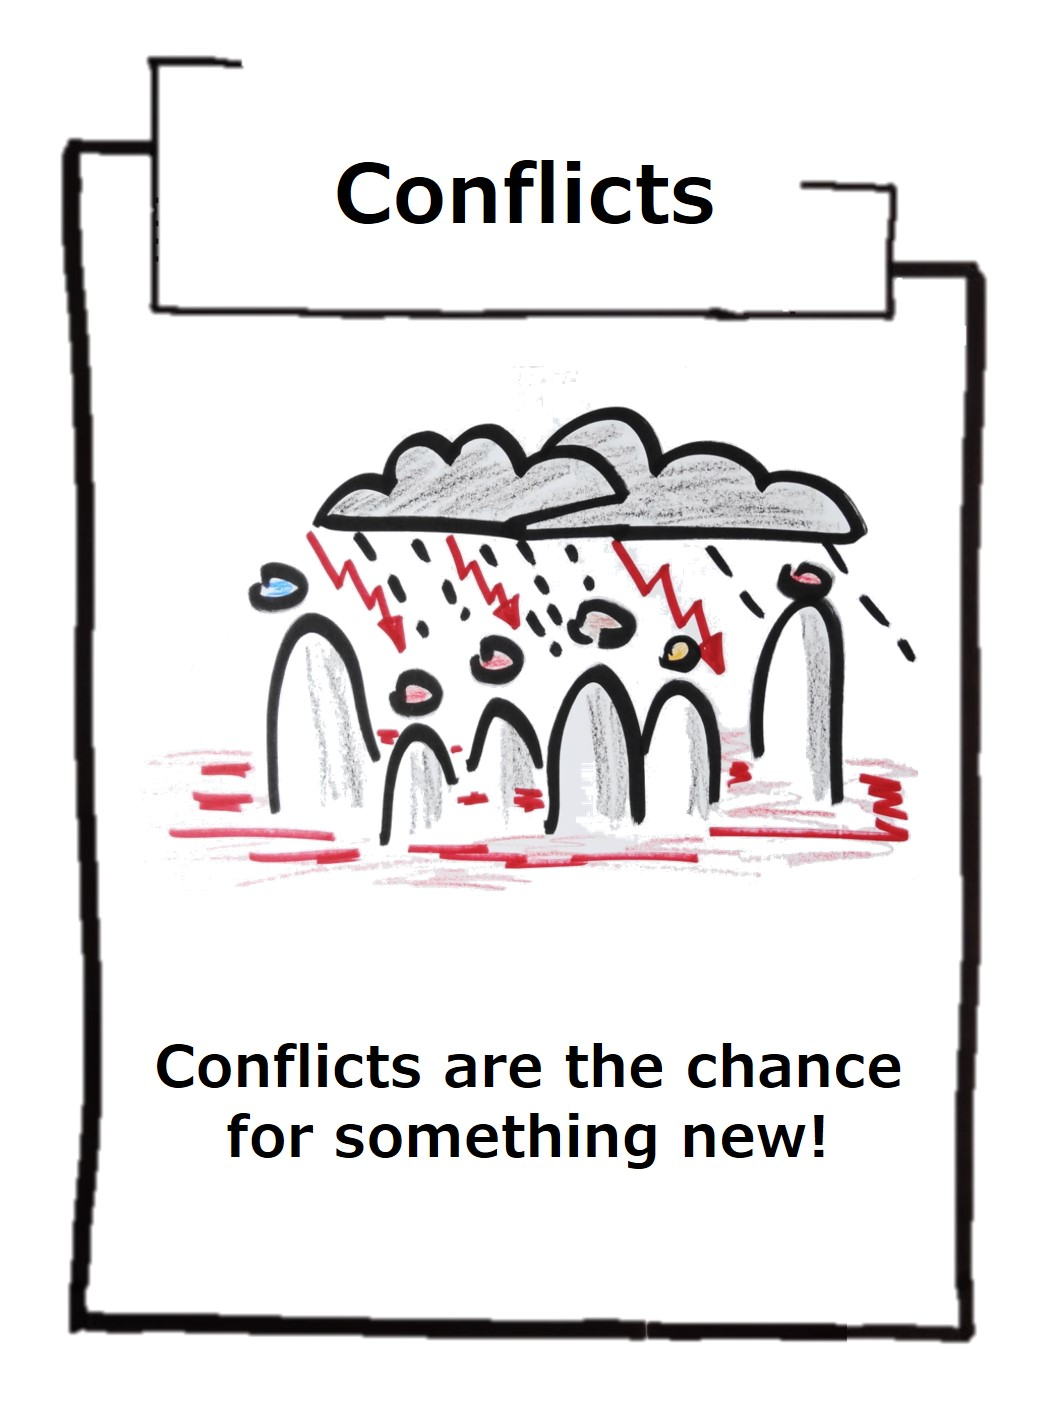 Conflicts are something we don't like - but they are the chance for new perspectives and a happier life